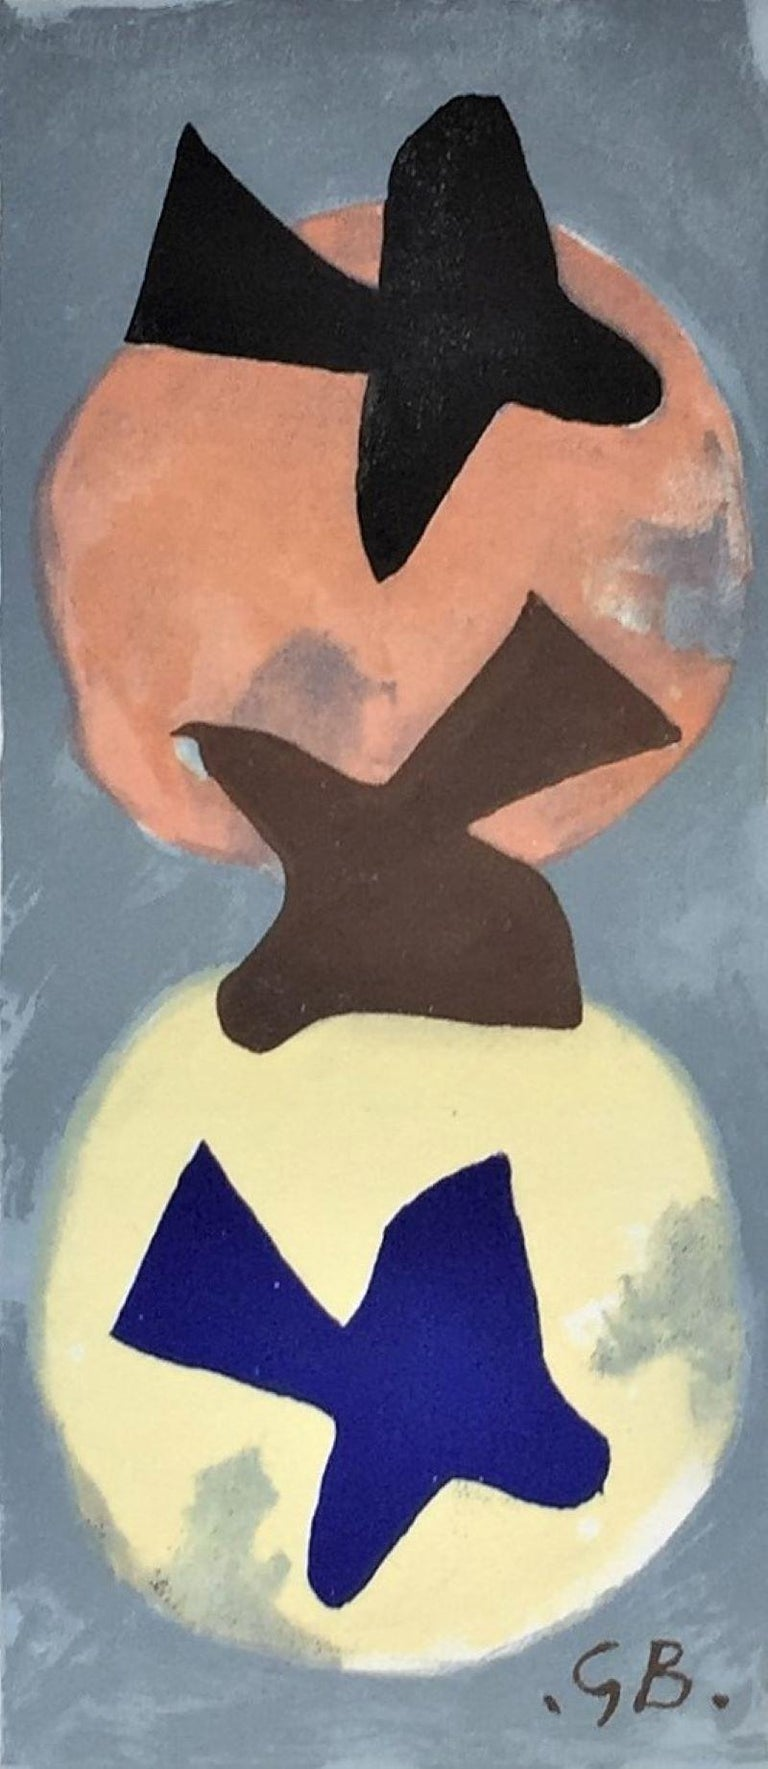 (after) Georges Braque Abstract Print - Soleil et lune  (Sun and Moon)